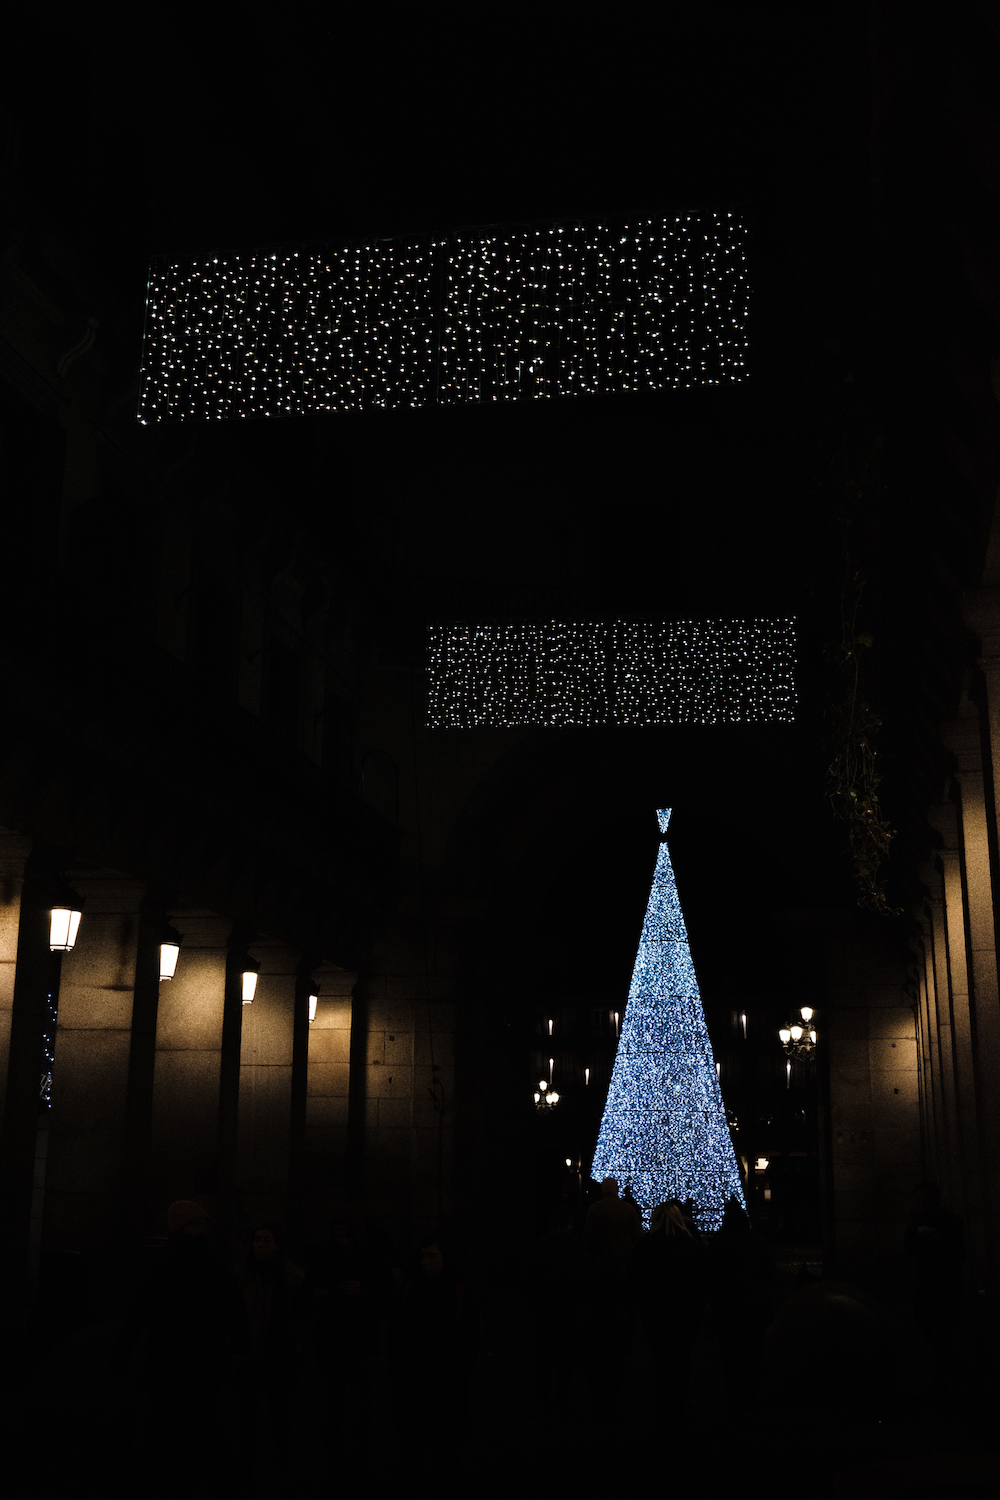 Madrid Christmas Tree and Decorations in Plaza Mayor - by Ben Holbrook from DriftwoodJournals.com